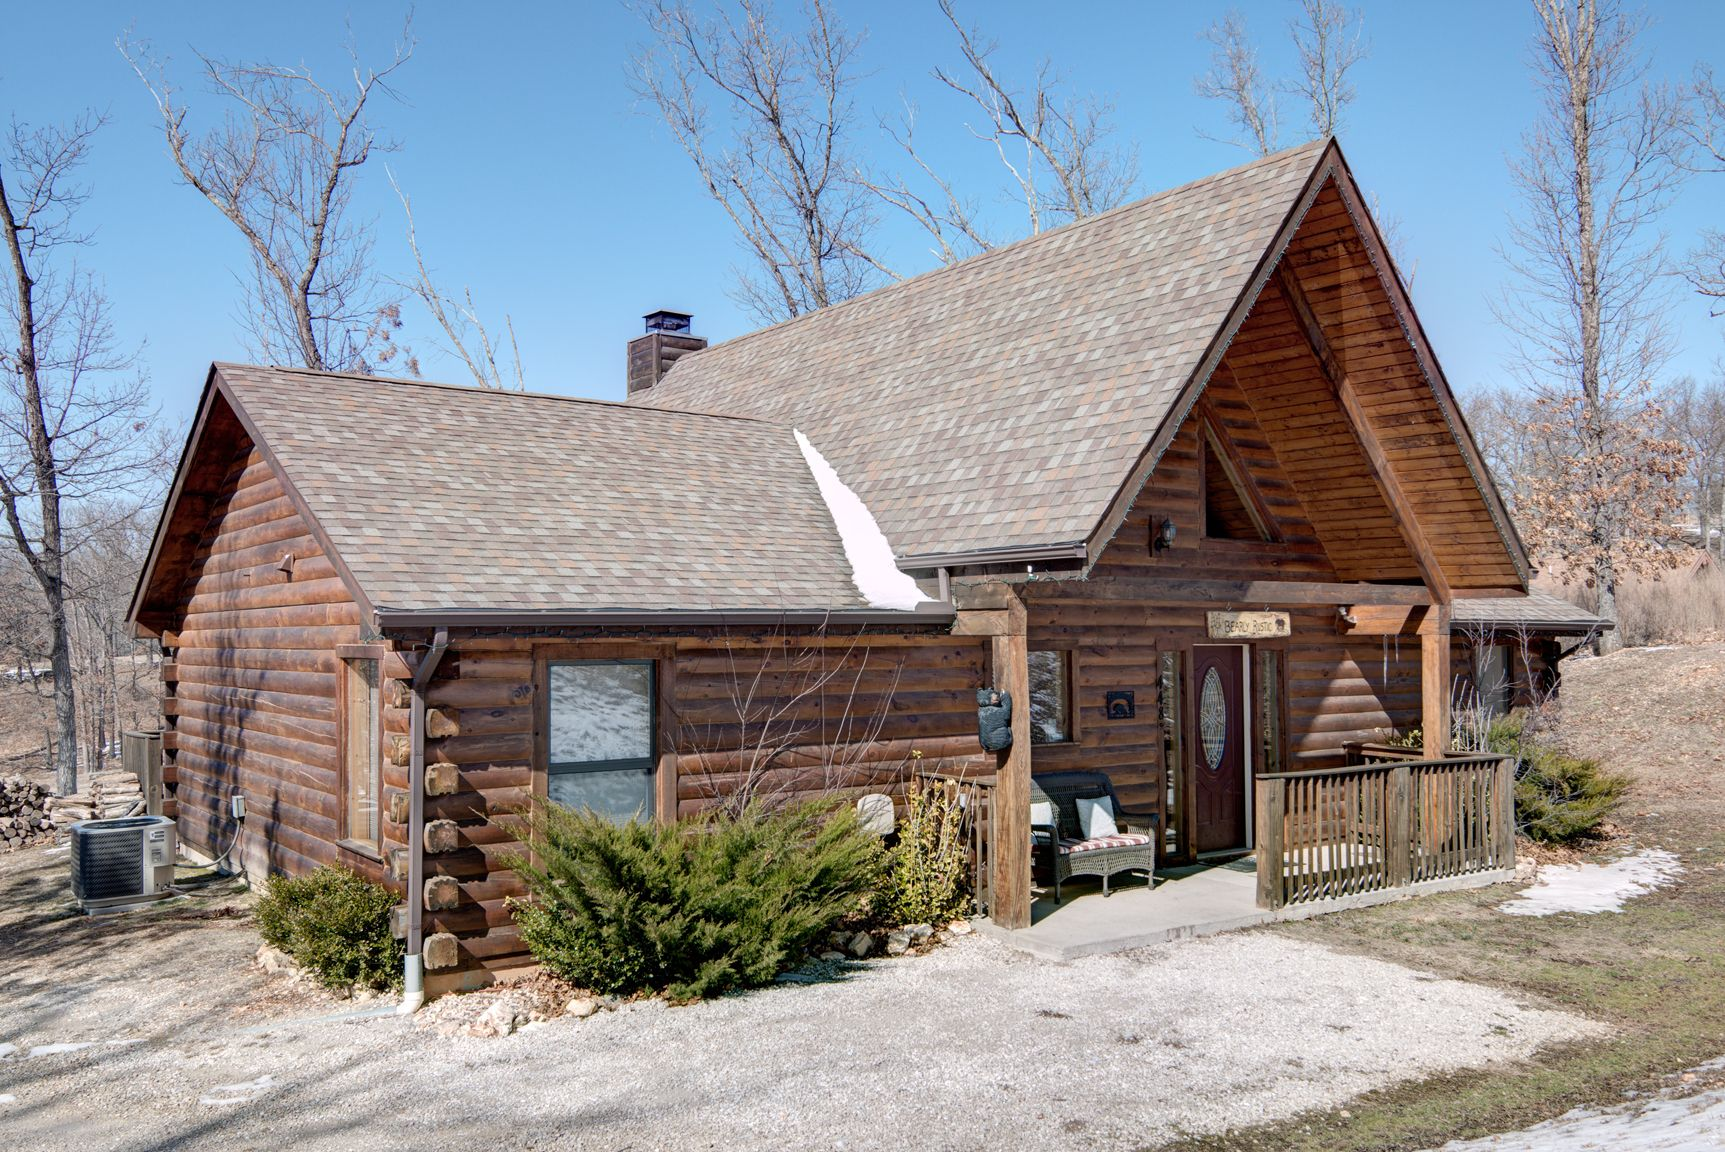 Bearly Rustic 3 Bed 2 Bath Log Cabin That Sleeps Up To 8 Winter View Cabin Log Cabin House Styles